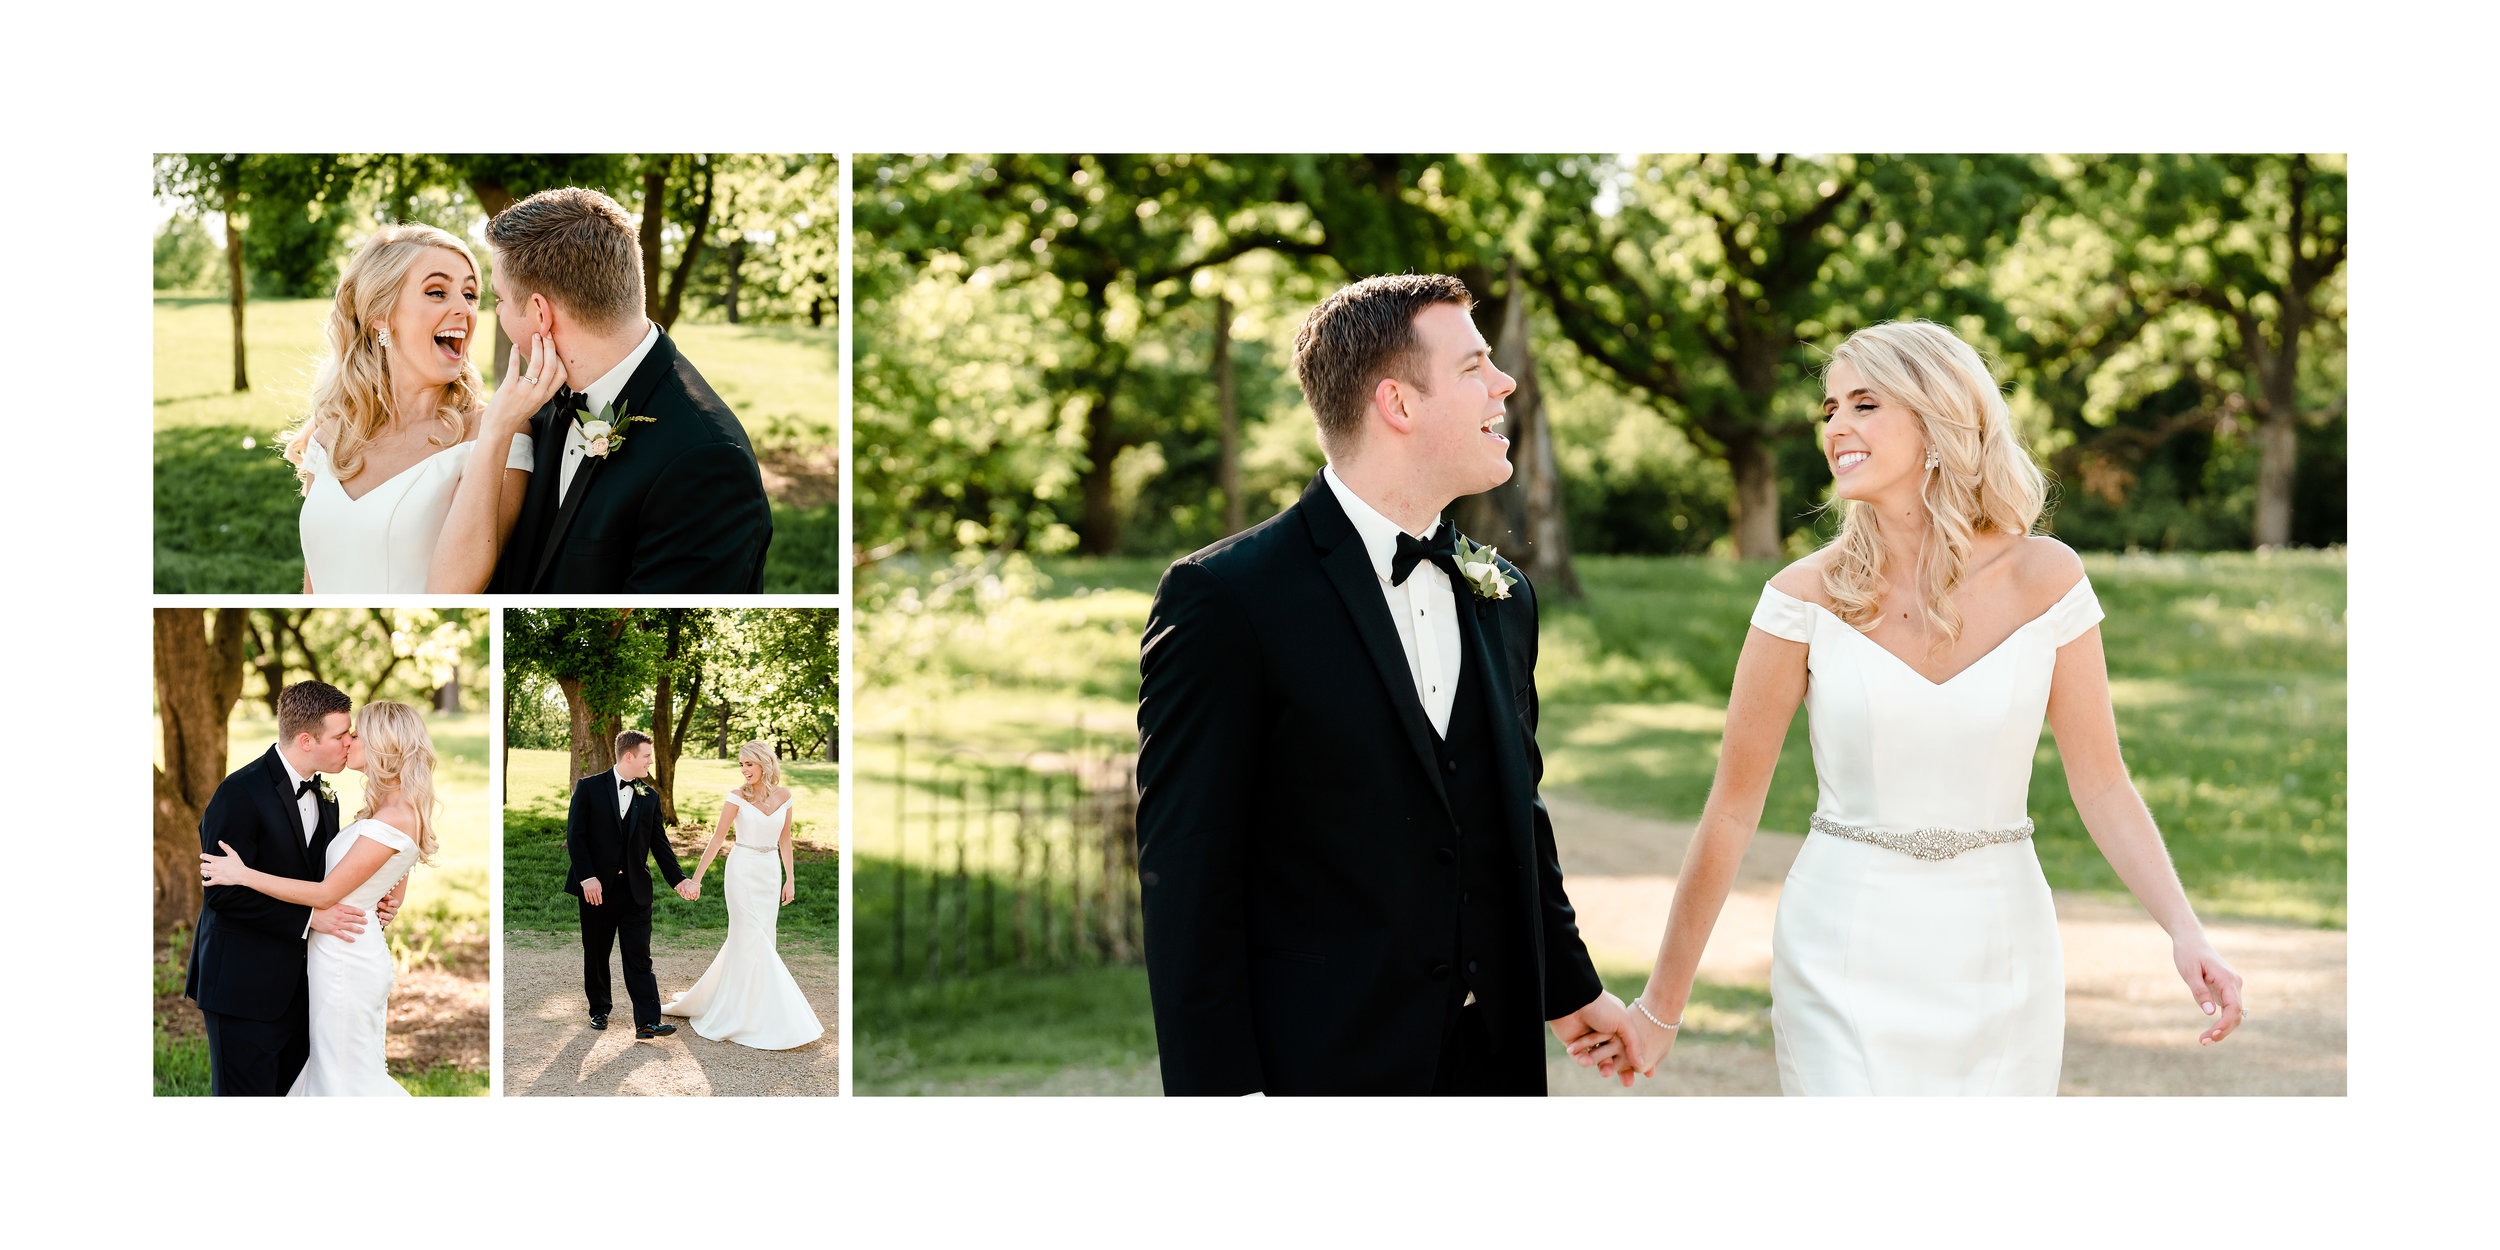 Amanda + Justin - Wedding Album_26.jpg